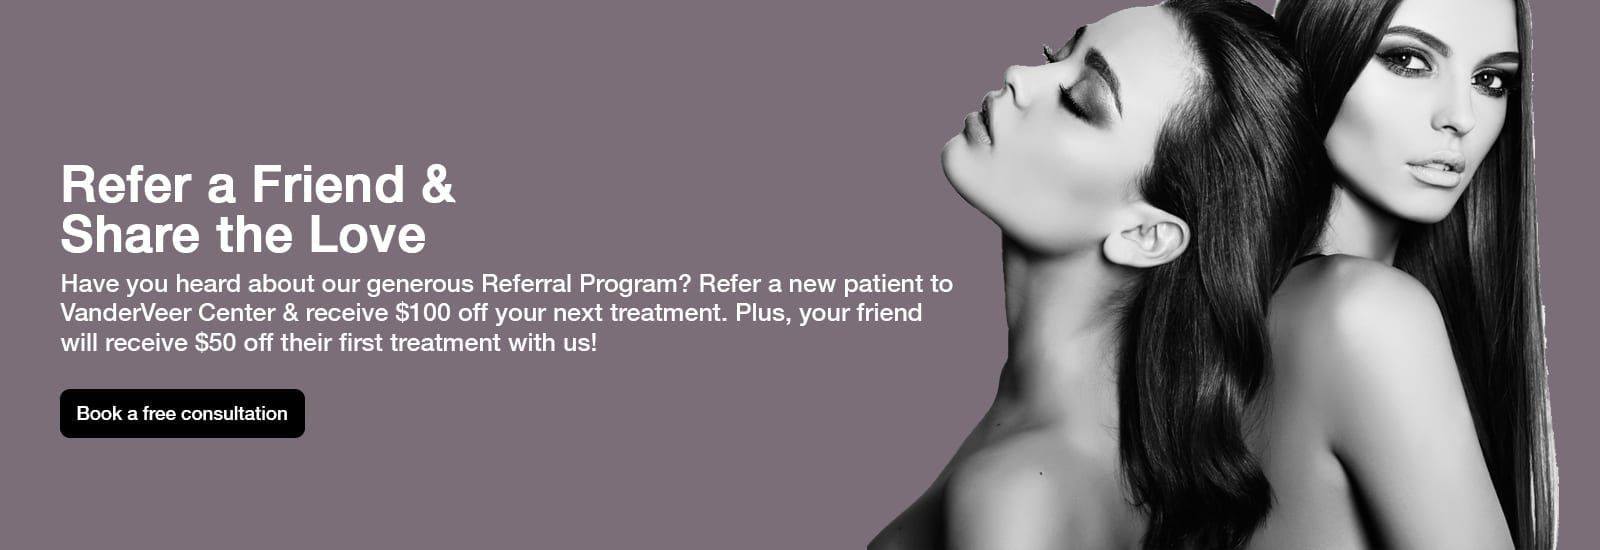 Refer a Friend & Share The Love